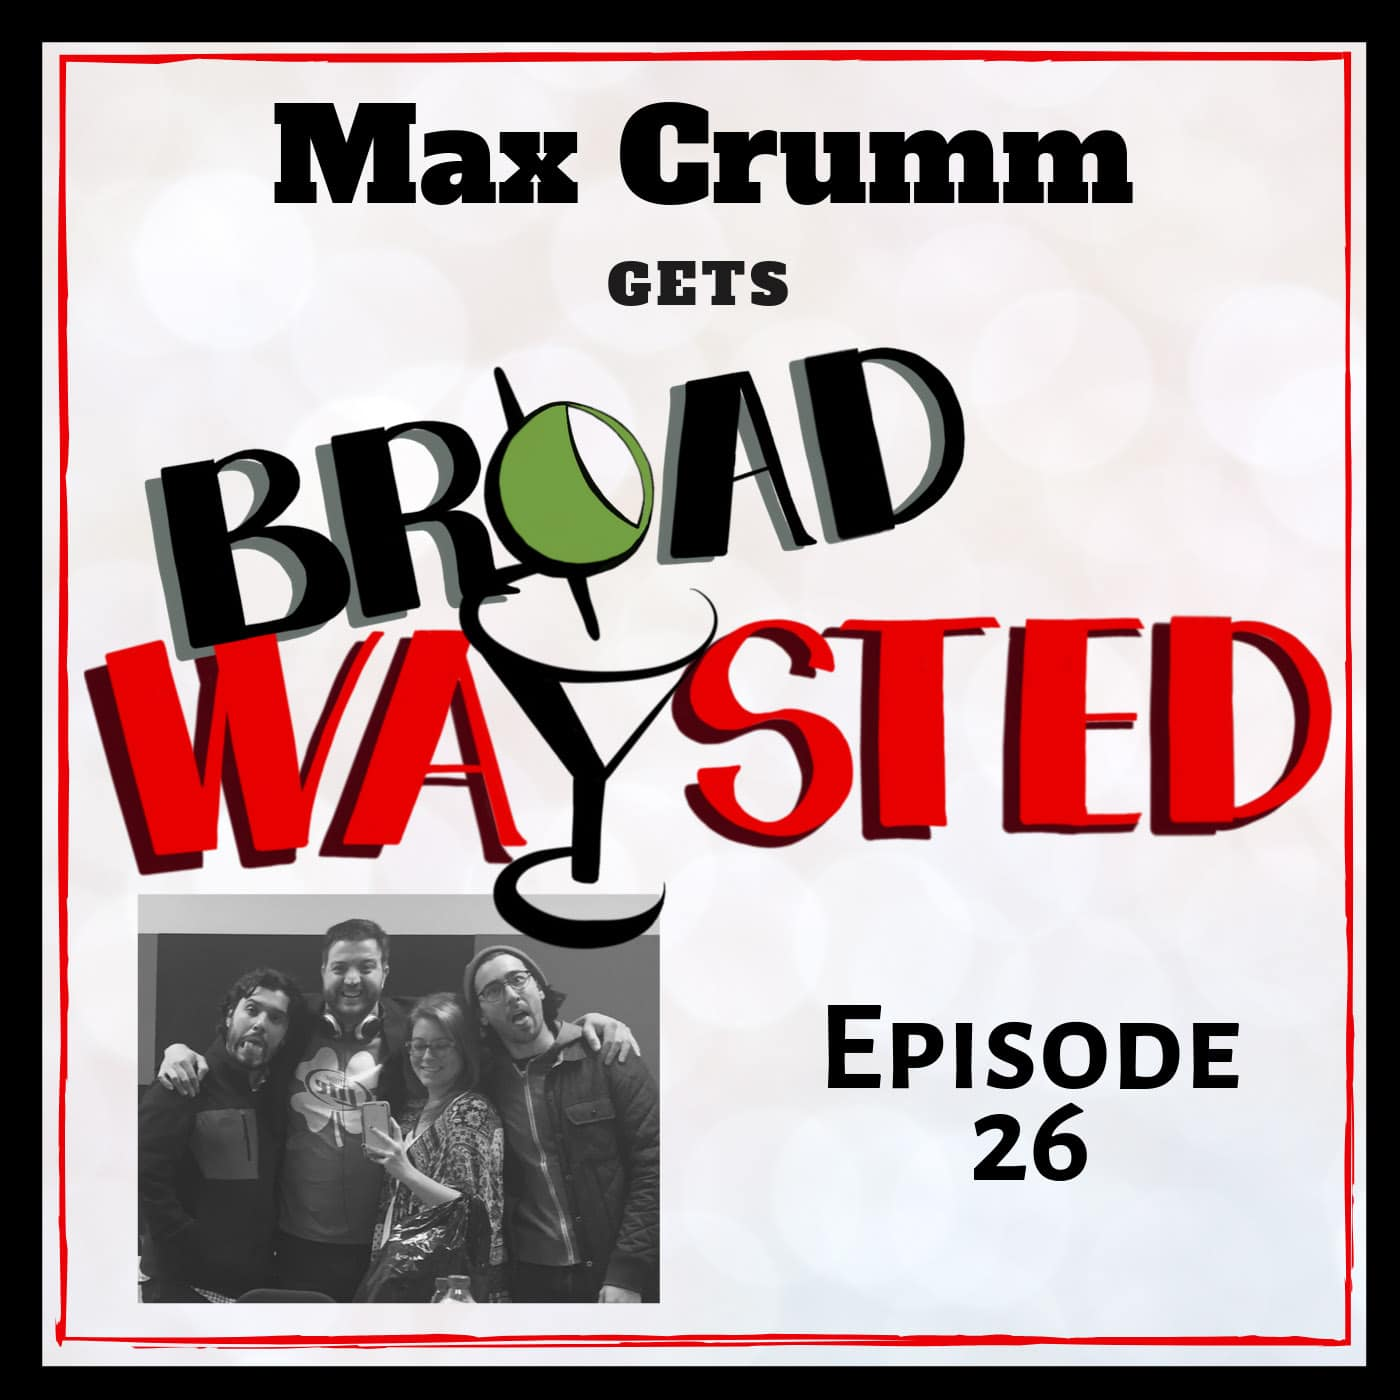 Broadwaysted Ep 26 Max Crumm